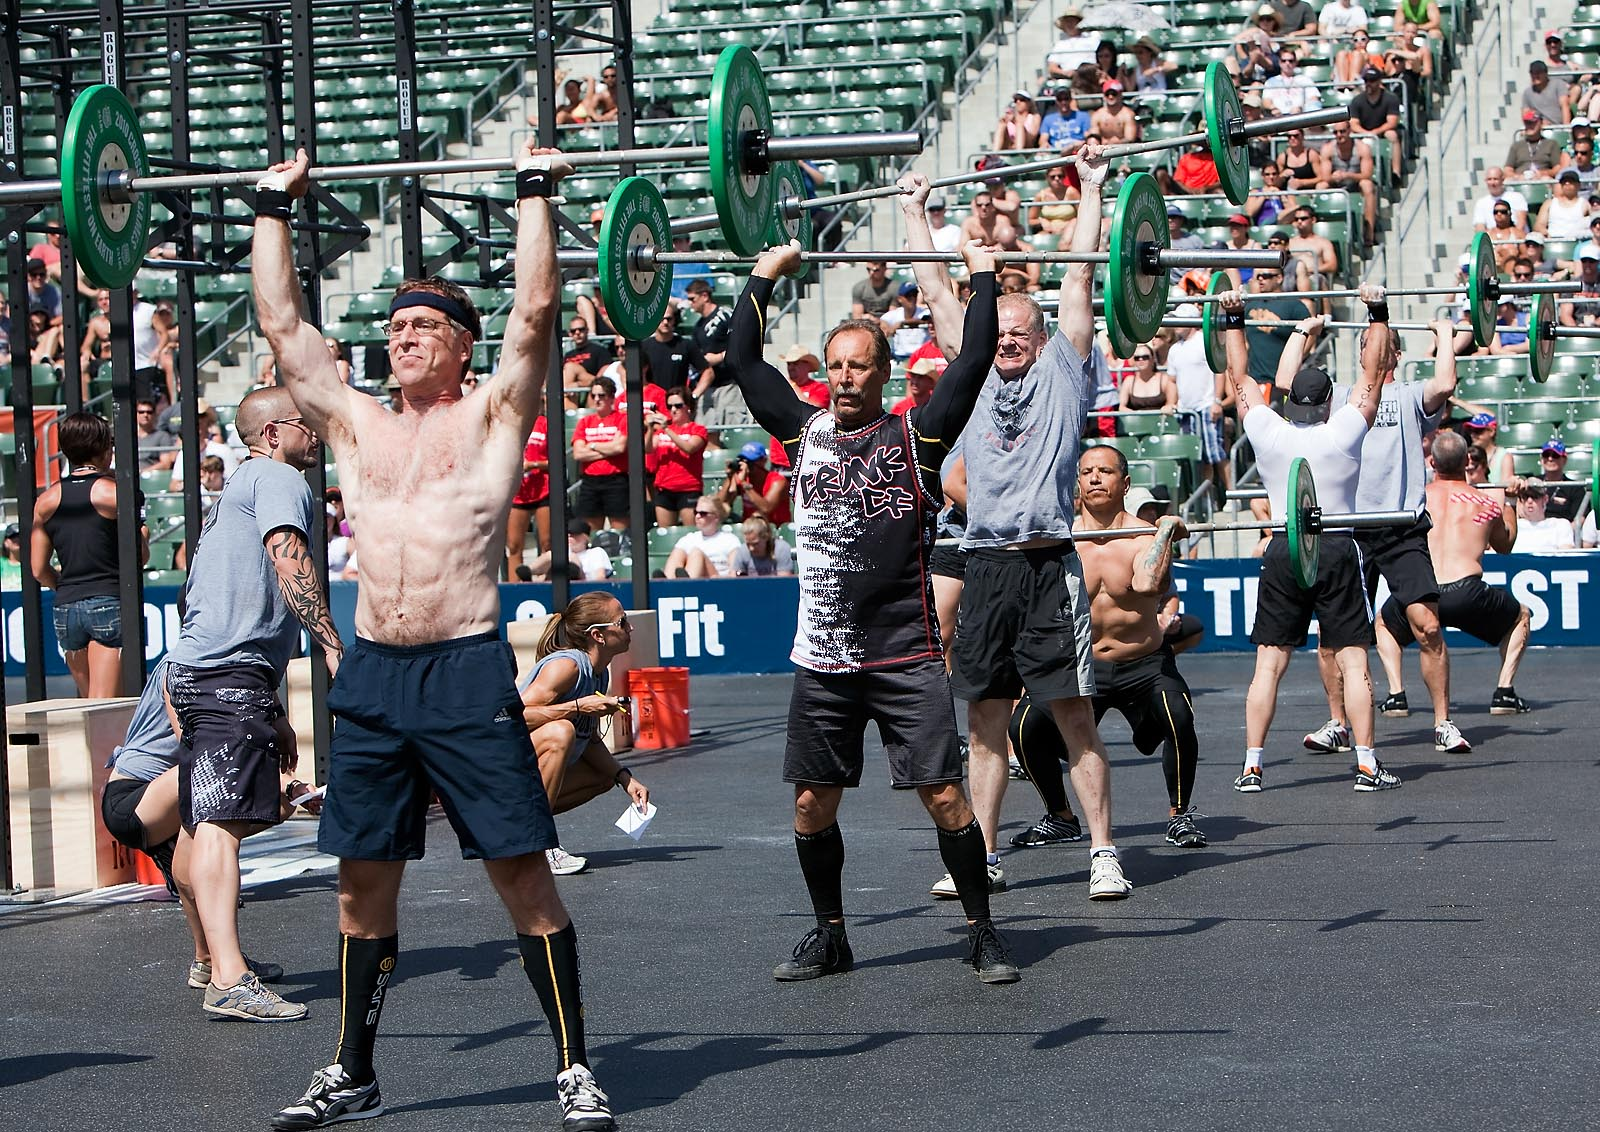 Video Master S Final Event 2010 Crossfit Games